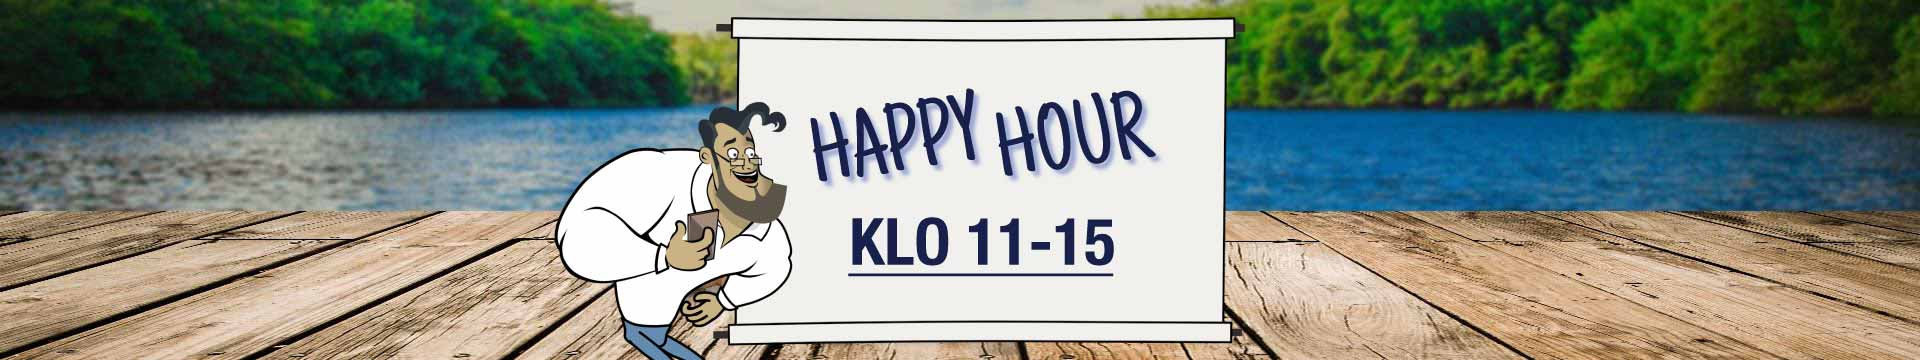 Slider Banner - Happy Hour May